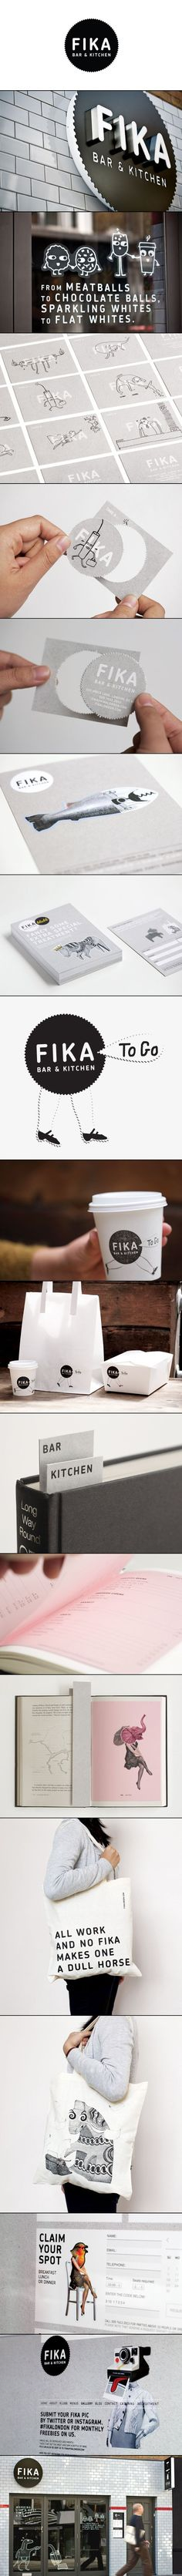 Fika designed by Designers Anonymous